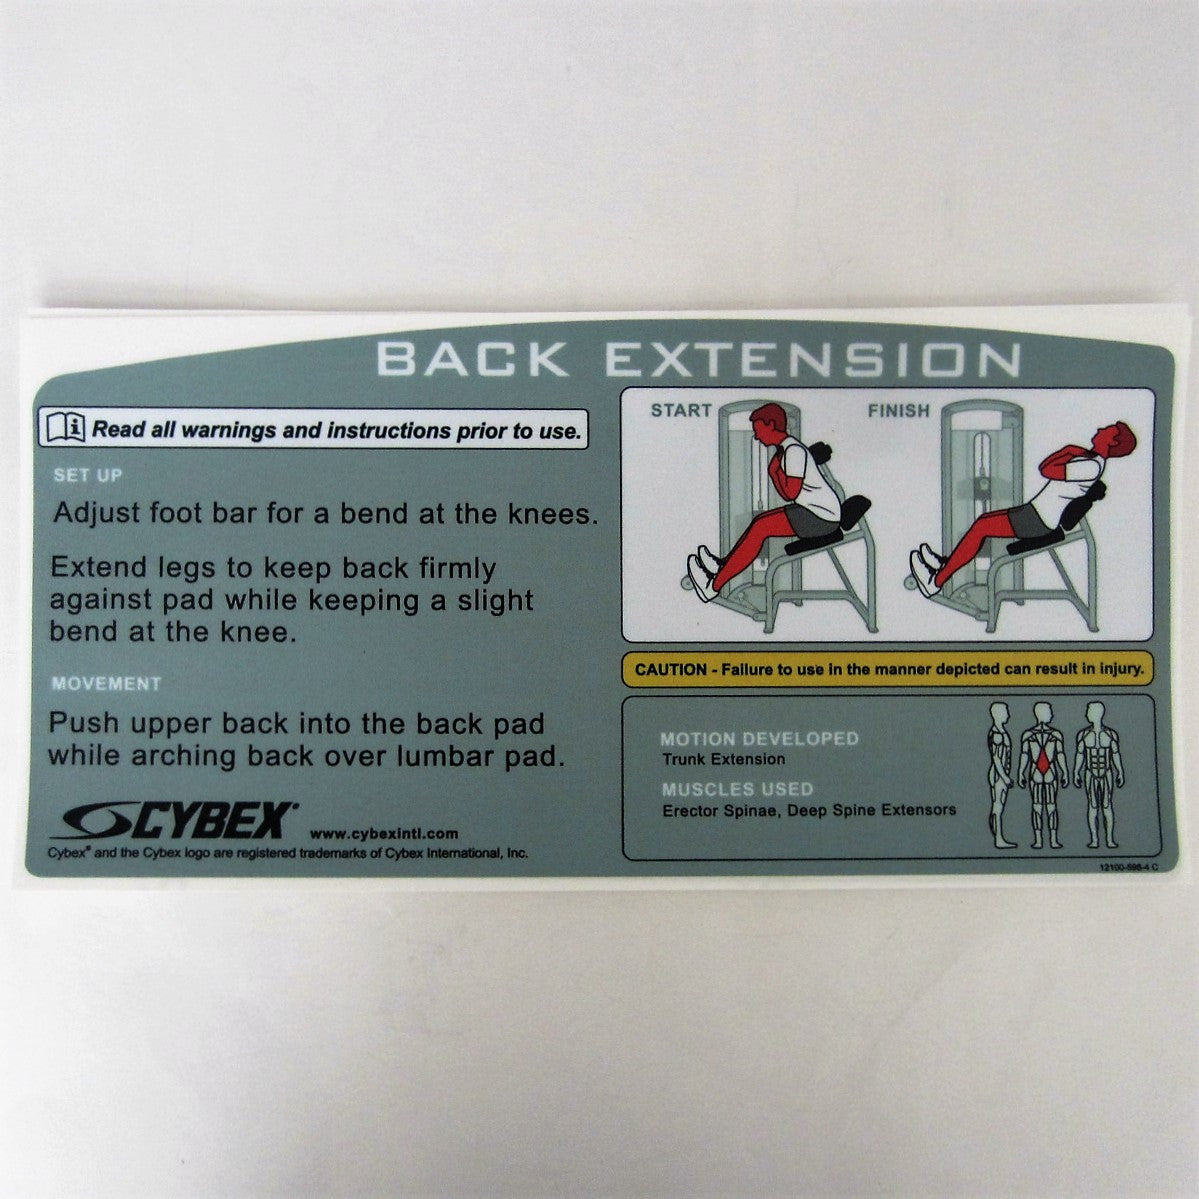 Cybex VR3 Back Extension